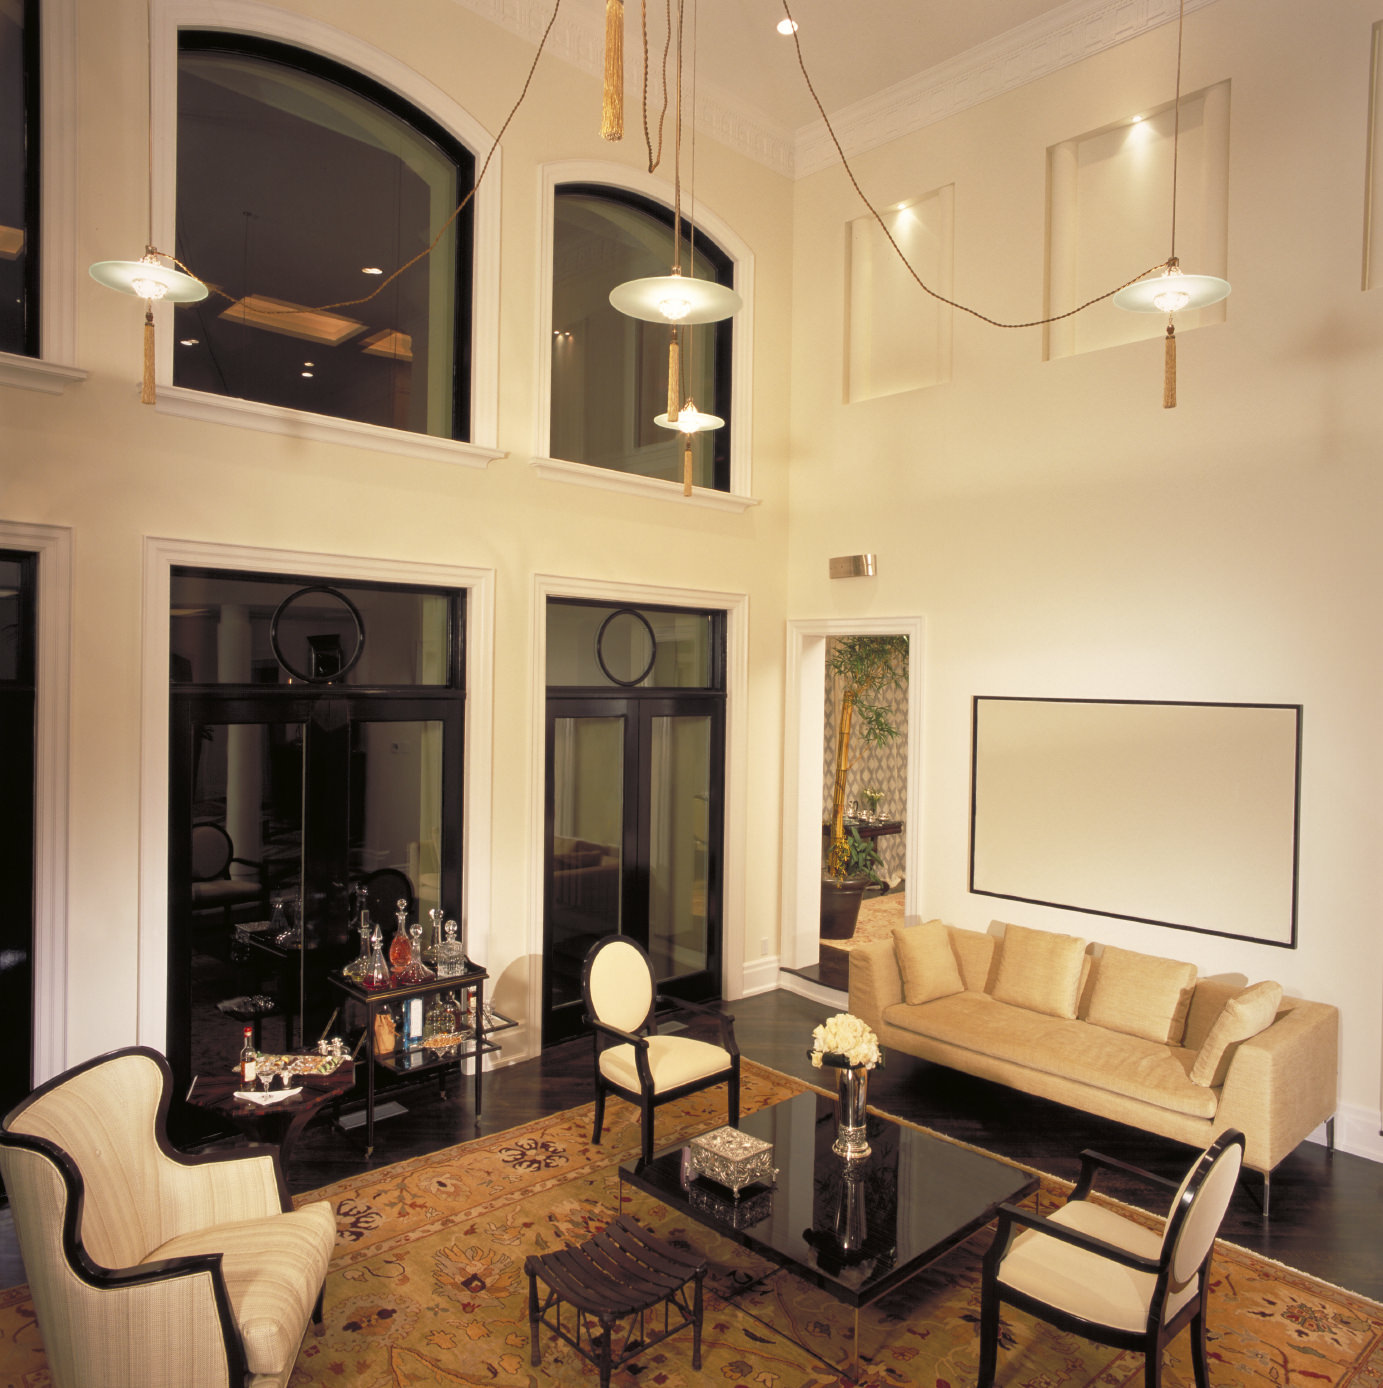 A formal living room featuring glass doors and windows, along with a tall ceiling. The room offers classy set of seats and a large brown area rug.